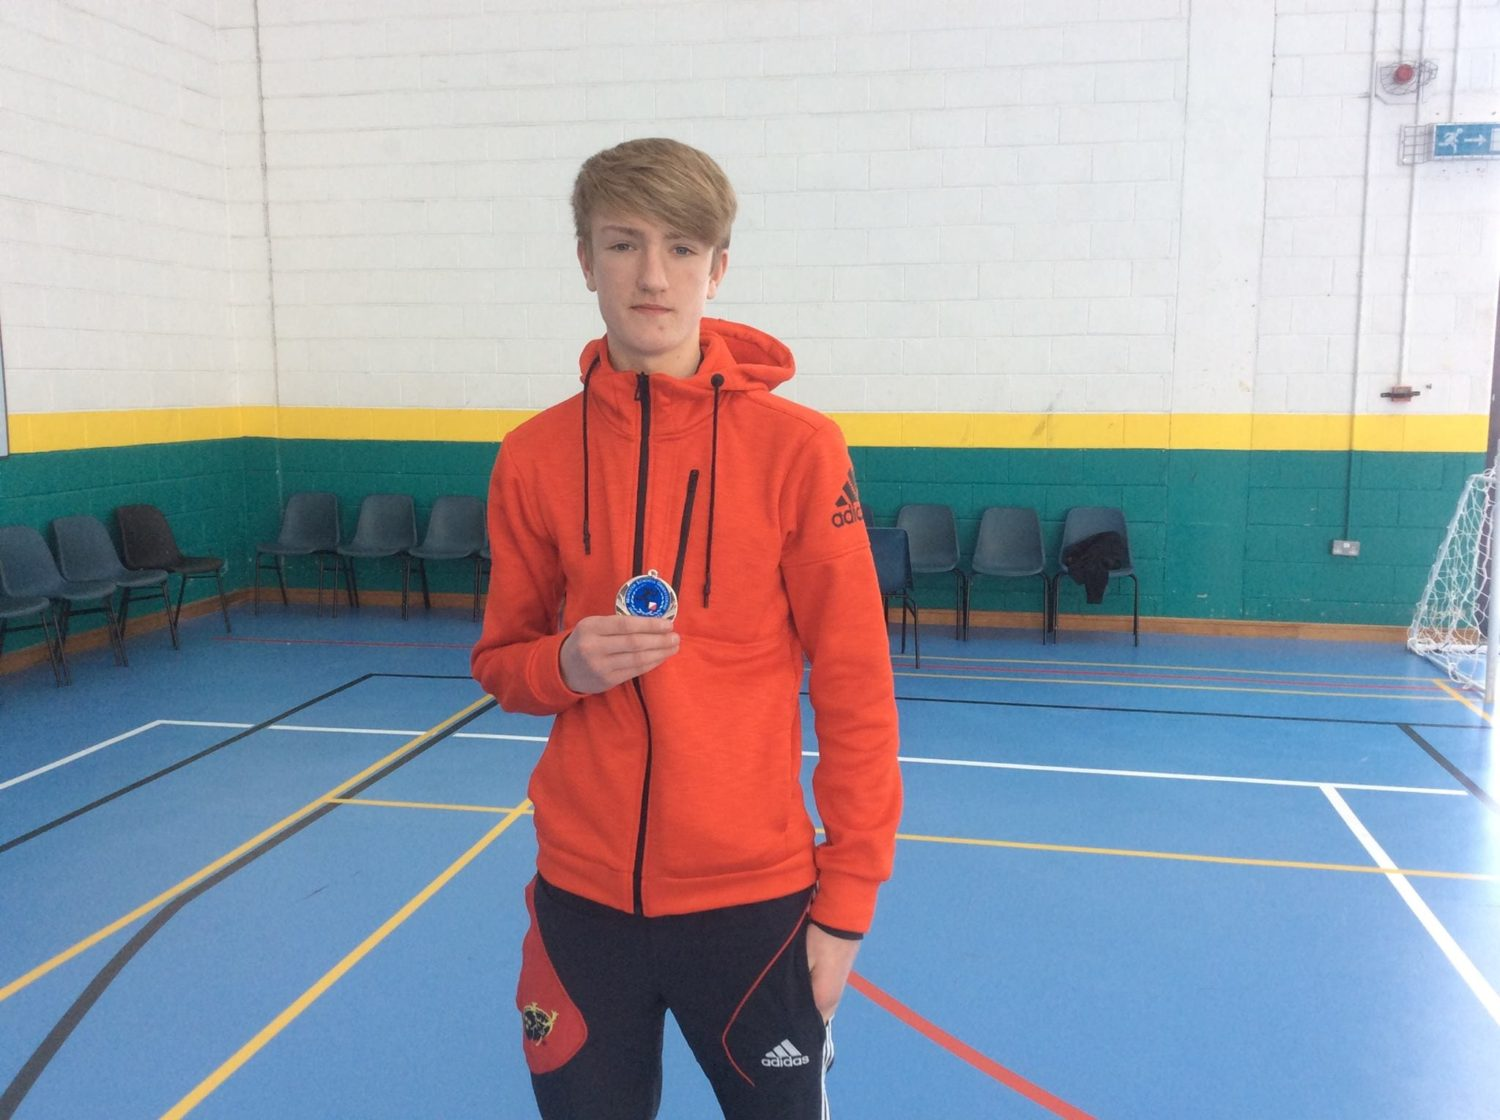 April 2016: Desmond College studnt wins Silver in the Munster Schools Orienteering Competition